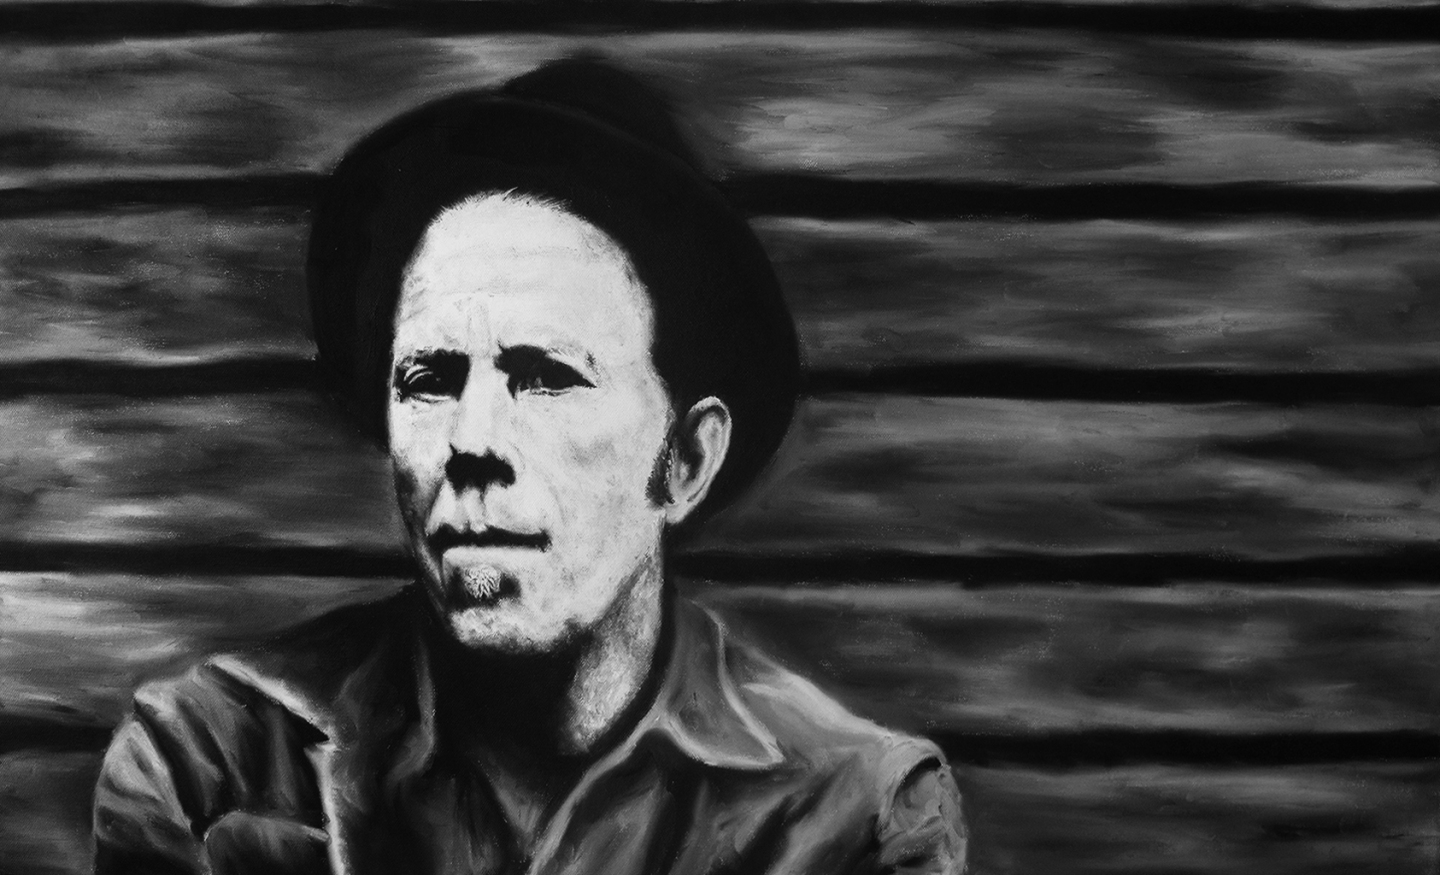 Tom Waits – Oil on Canvas